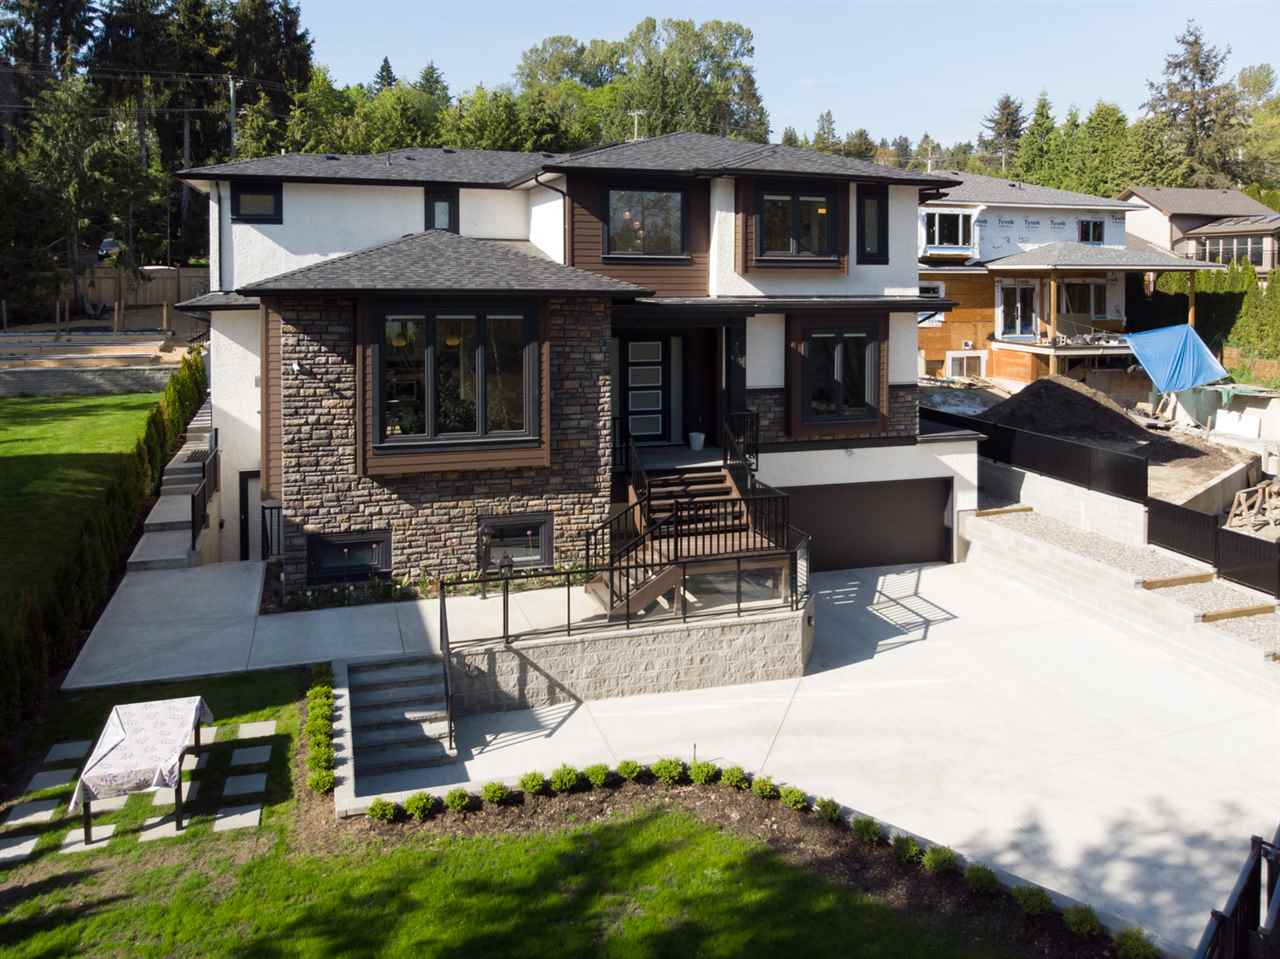 Extraordinary 7 bedroom & 7 bathroom new home situated on a sprawling 12,577 sqft park like lot. Custom built for the owner in 2017, this home offers top quality materials and meticulous attention to detail. Over height ceilings, tilt and turn windows & eclipse doors set this home apart. Main floor: Elegant & functional floor plan offers an open living-dining room with 12' ceilings. Dream kitchen boasts a huge island, top appliances & a large walk-in pantry (roughed in as a wok kitchen). Seamless indoor/outdoor living with the family room opening directly to the covered deck & private landscaped backyard. Office has a closet & window & could be used as a bedroom. Other features include: Triple glazed windows, Italian tile, advanced security system & camera network. Upper floor: Luxurious master suite with ensuite & balcony & 3 other ensuite bedrooms. Lower floor efficiently designed with a legal 2 bedroom suite & 1 bedroom in-law suite with entrance.  Attached 2 car garage with access to a huge storage area.